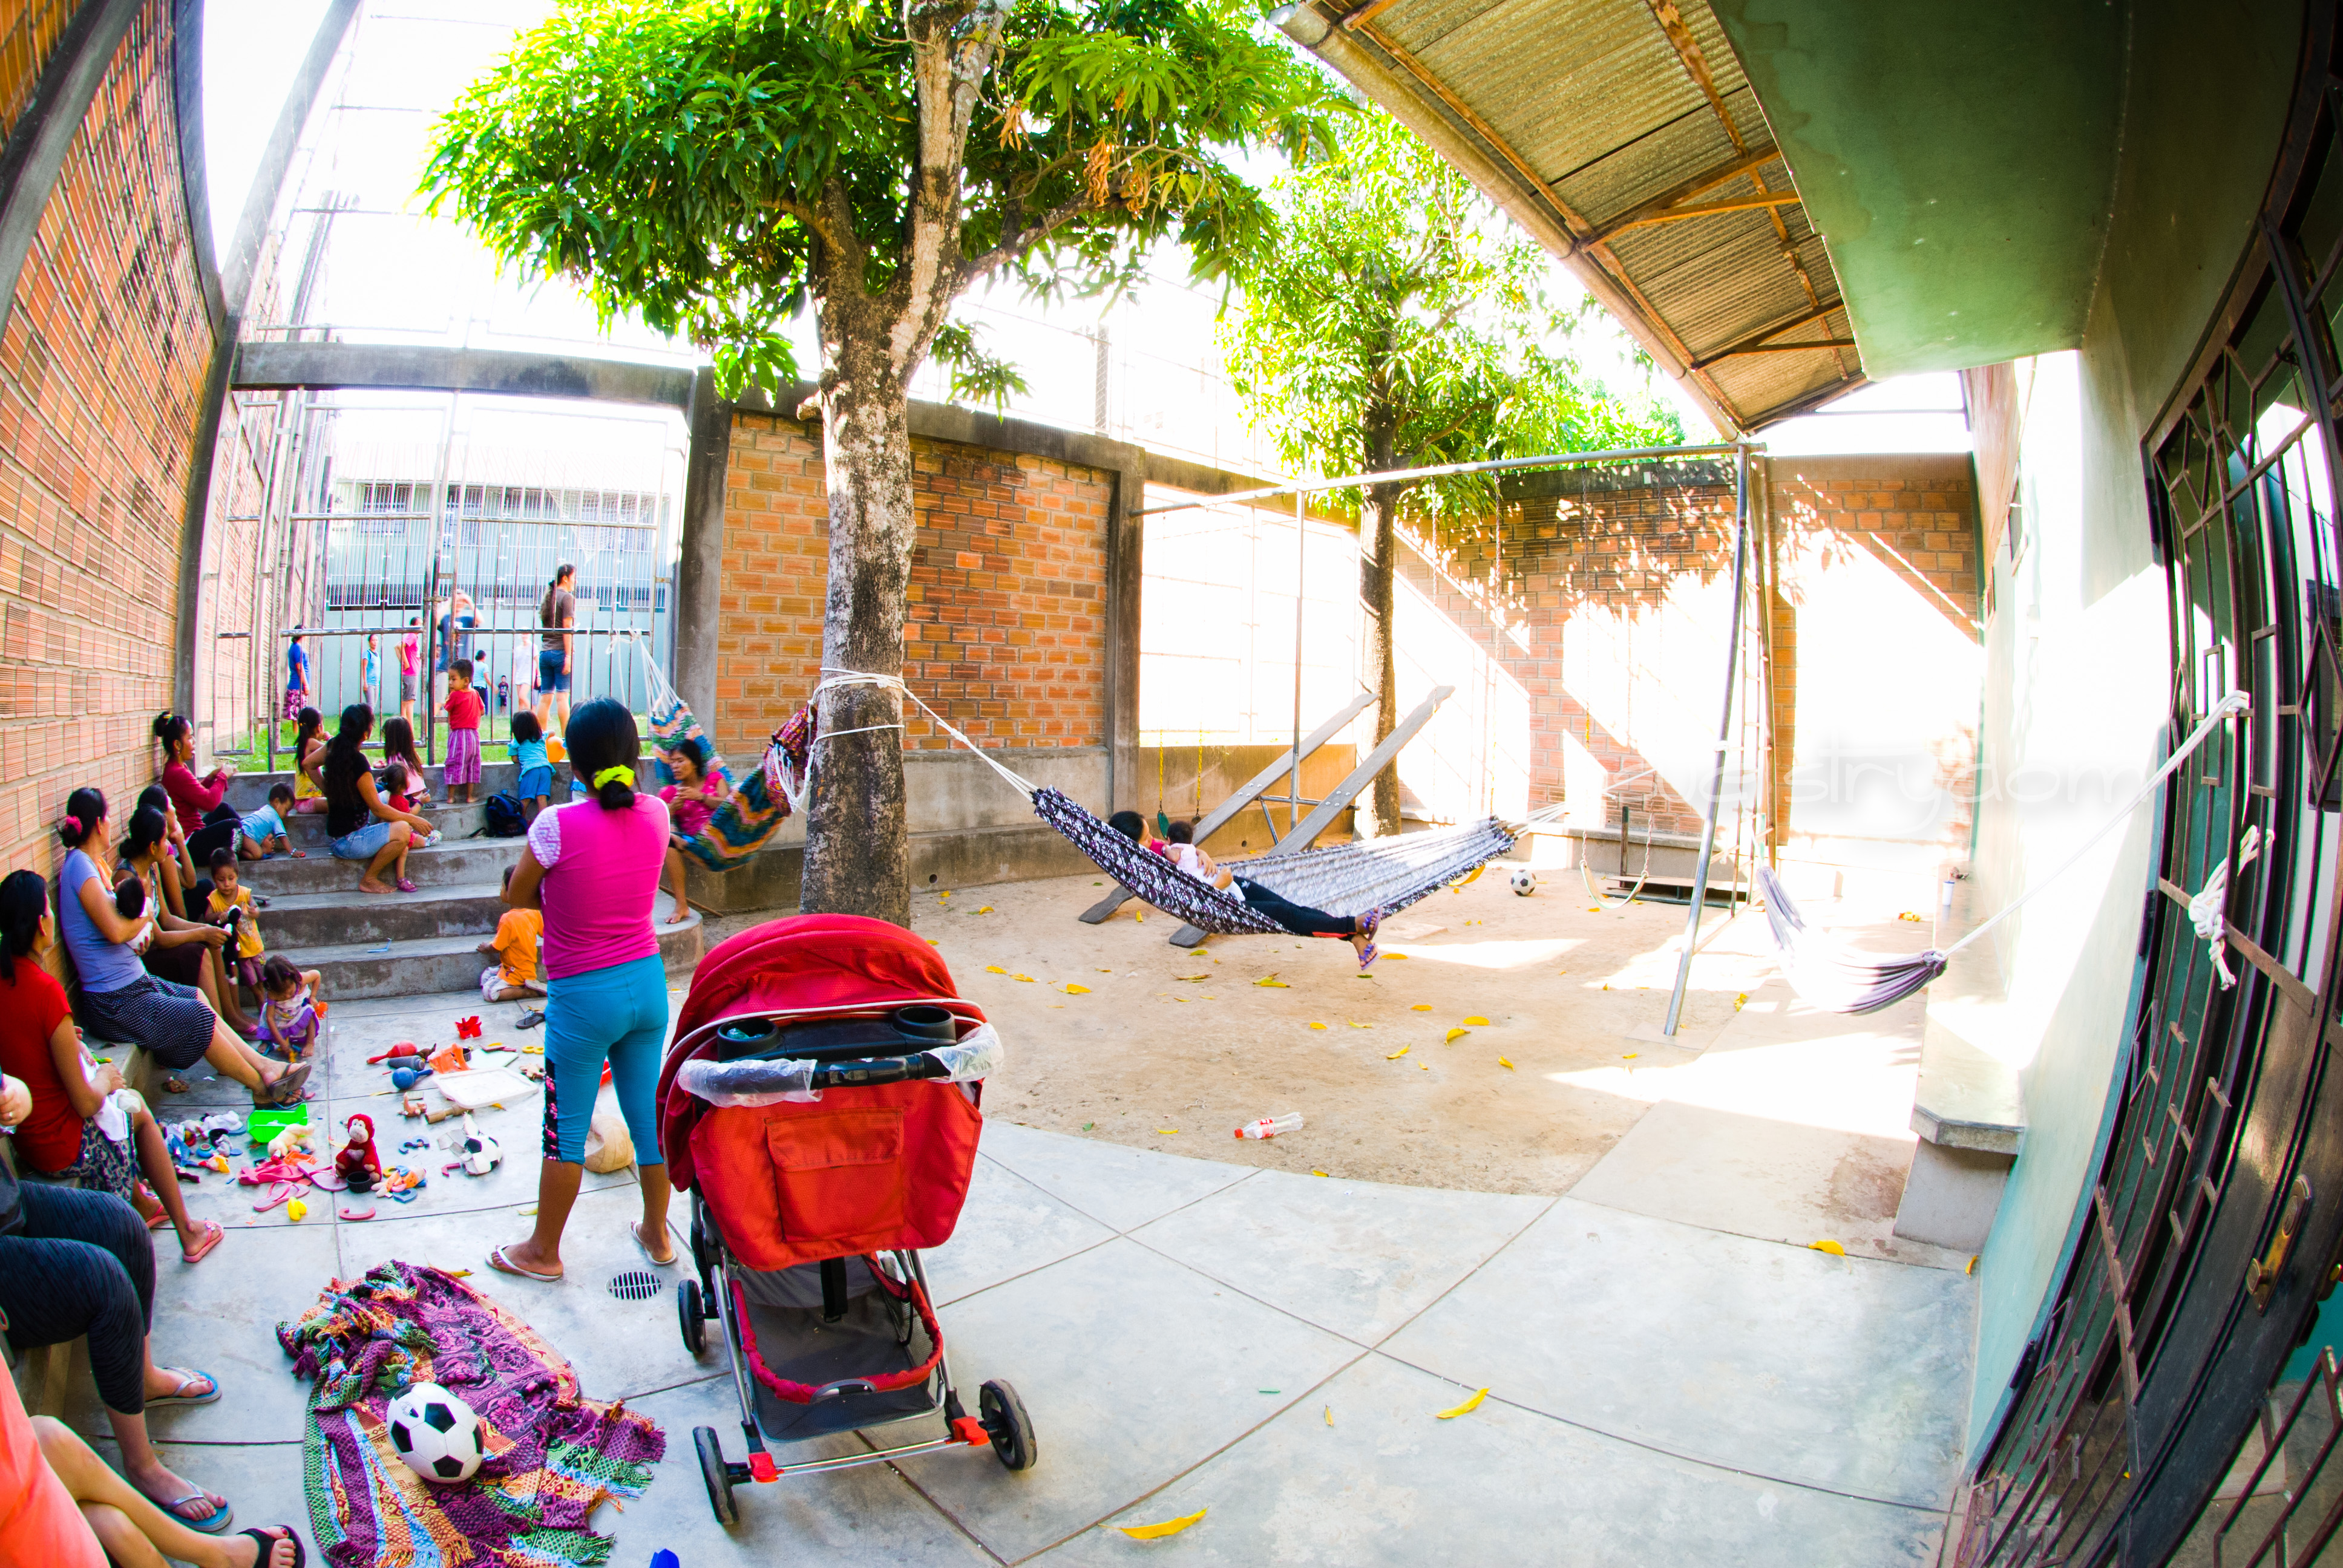 This courtyard is a gathering place for the moms and a playground for the children. The secure gate in the top left of the picture separates the little ones from the hazardous soccer field. The secure gate on the right of the picture keeps the little ones contained and prevents them wandering around the whole Center and into the street.